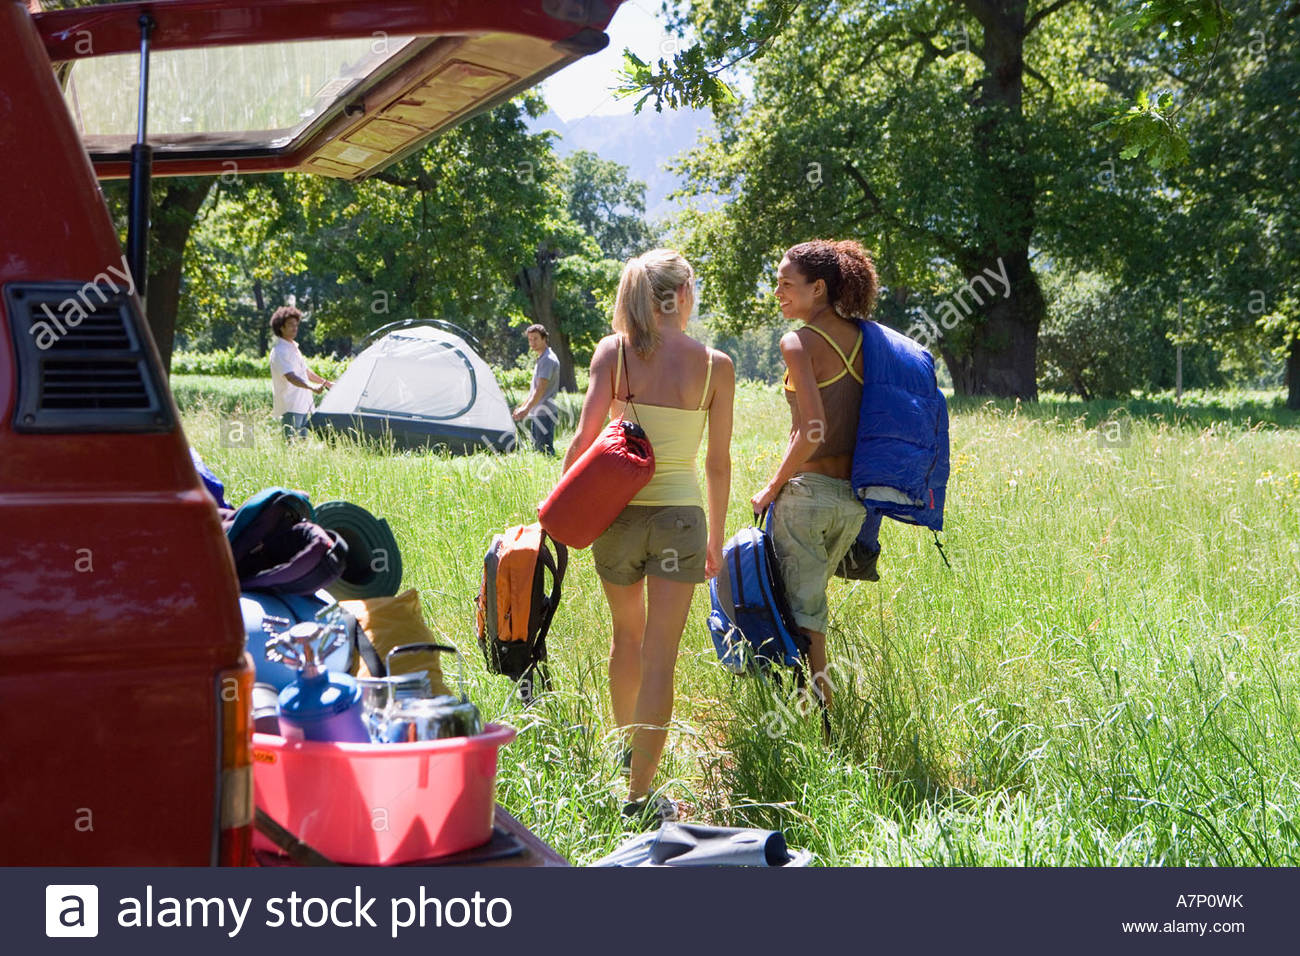 Two young women unloading parked SUV in woodland clearing on camping trip rear view smiling - Stock Image